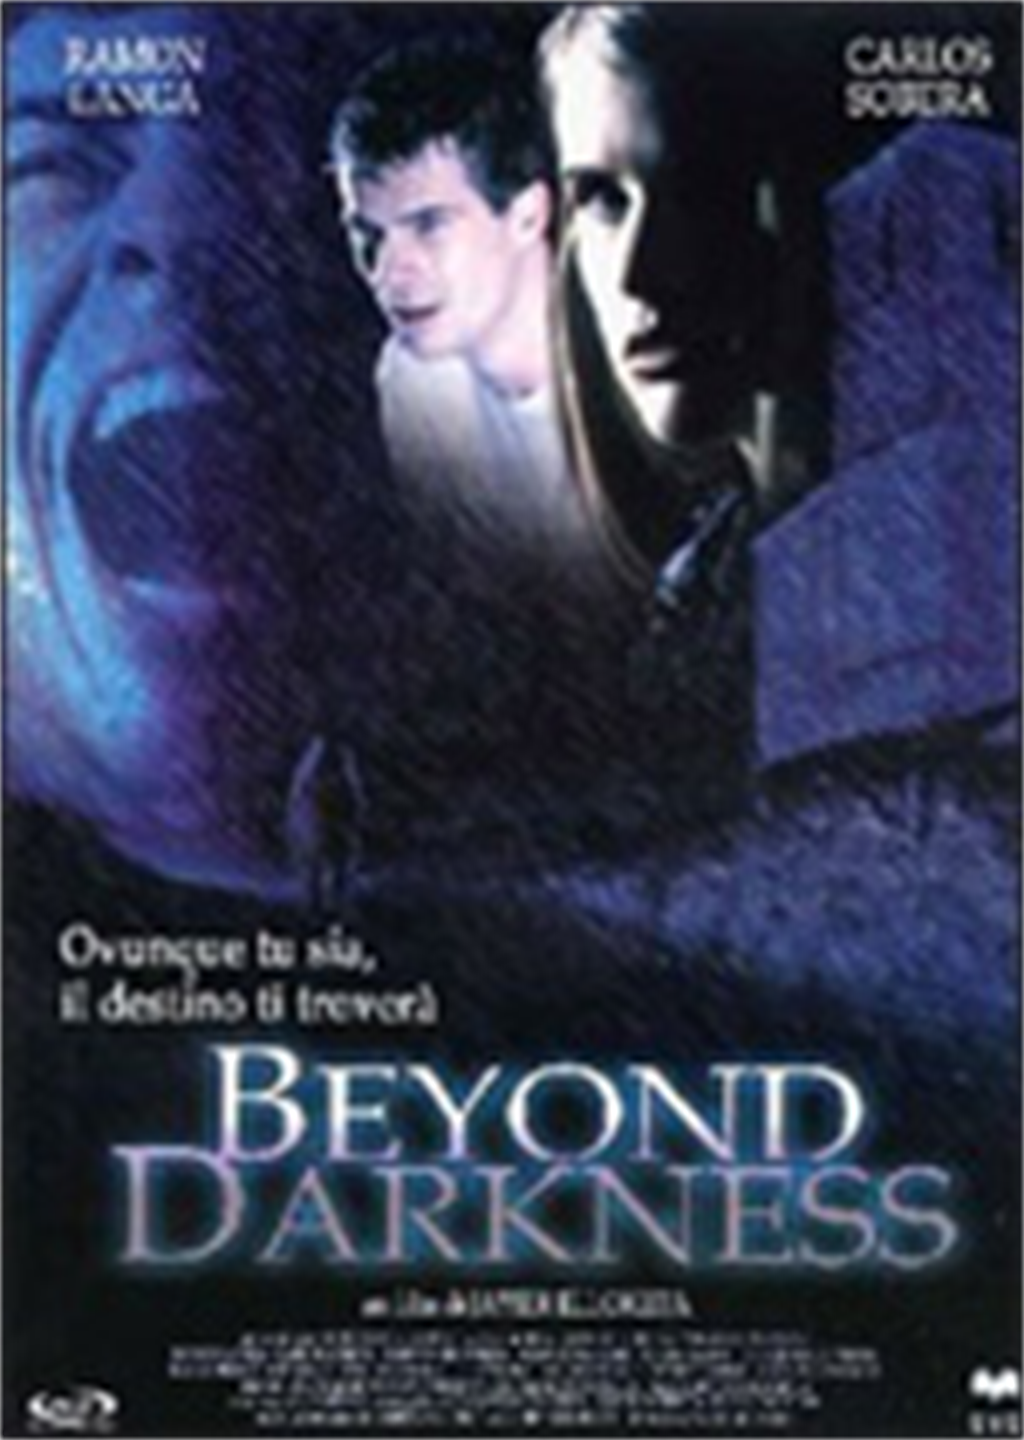 Beyond darkness